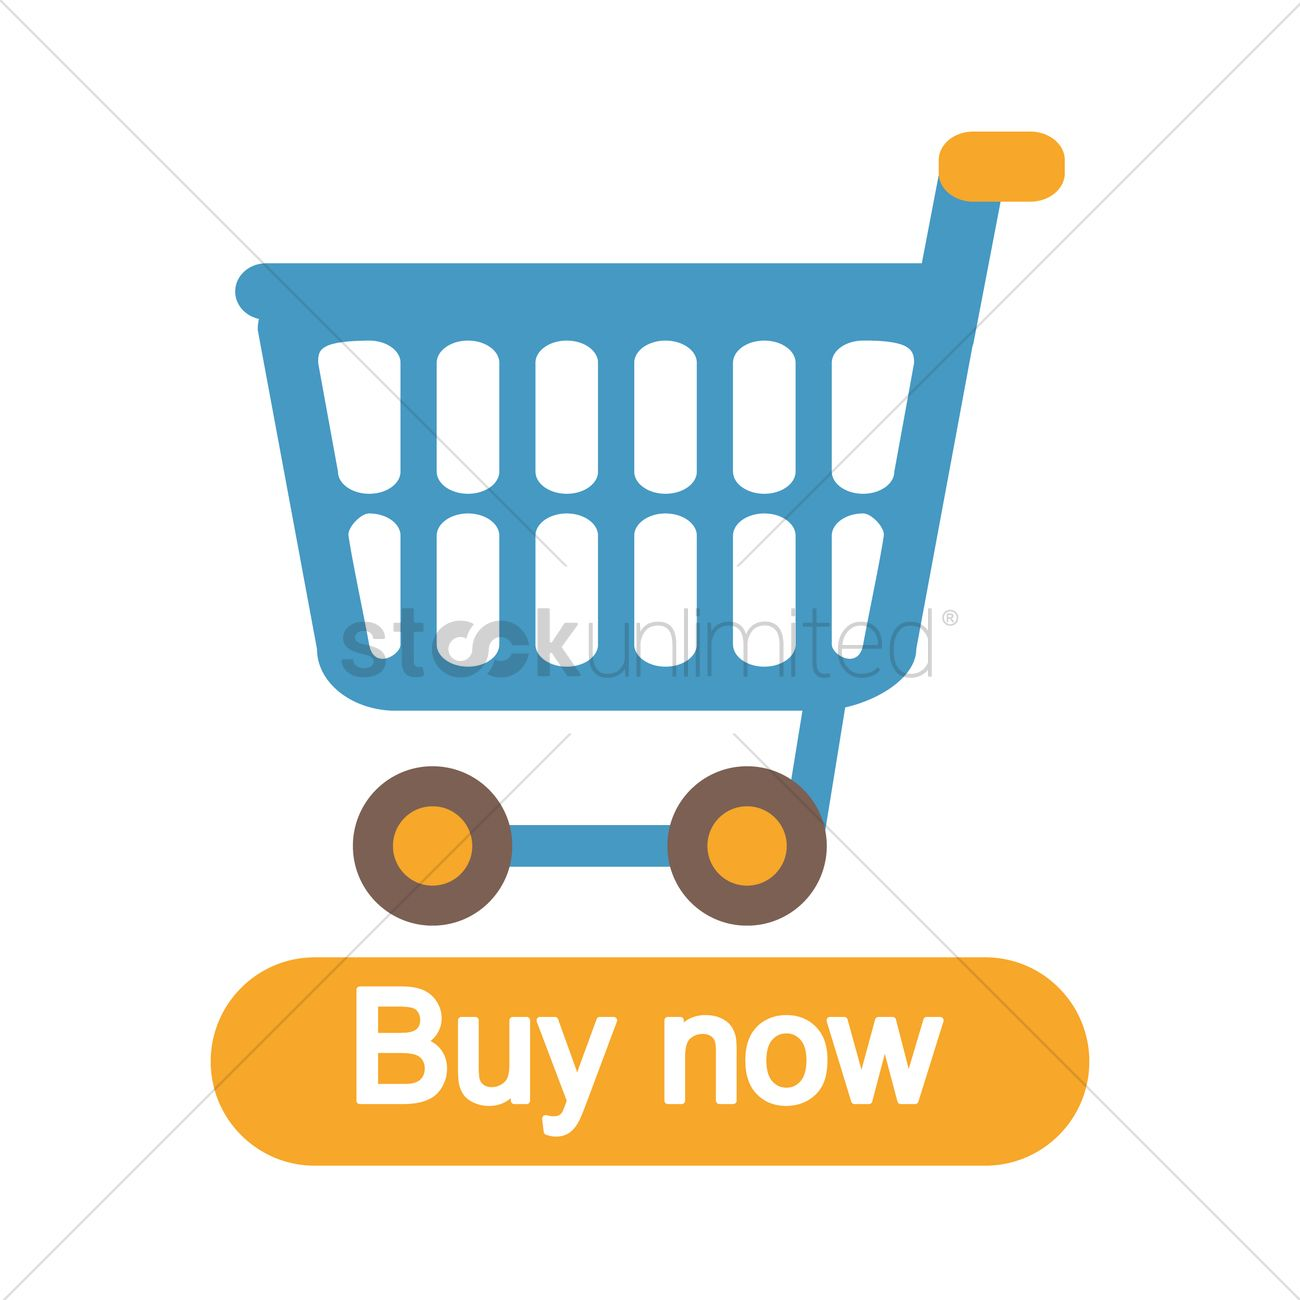 Buy It Now: Free Buy Now Icon Vector Image - 1249257